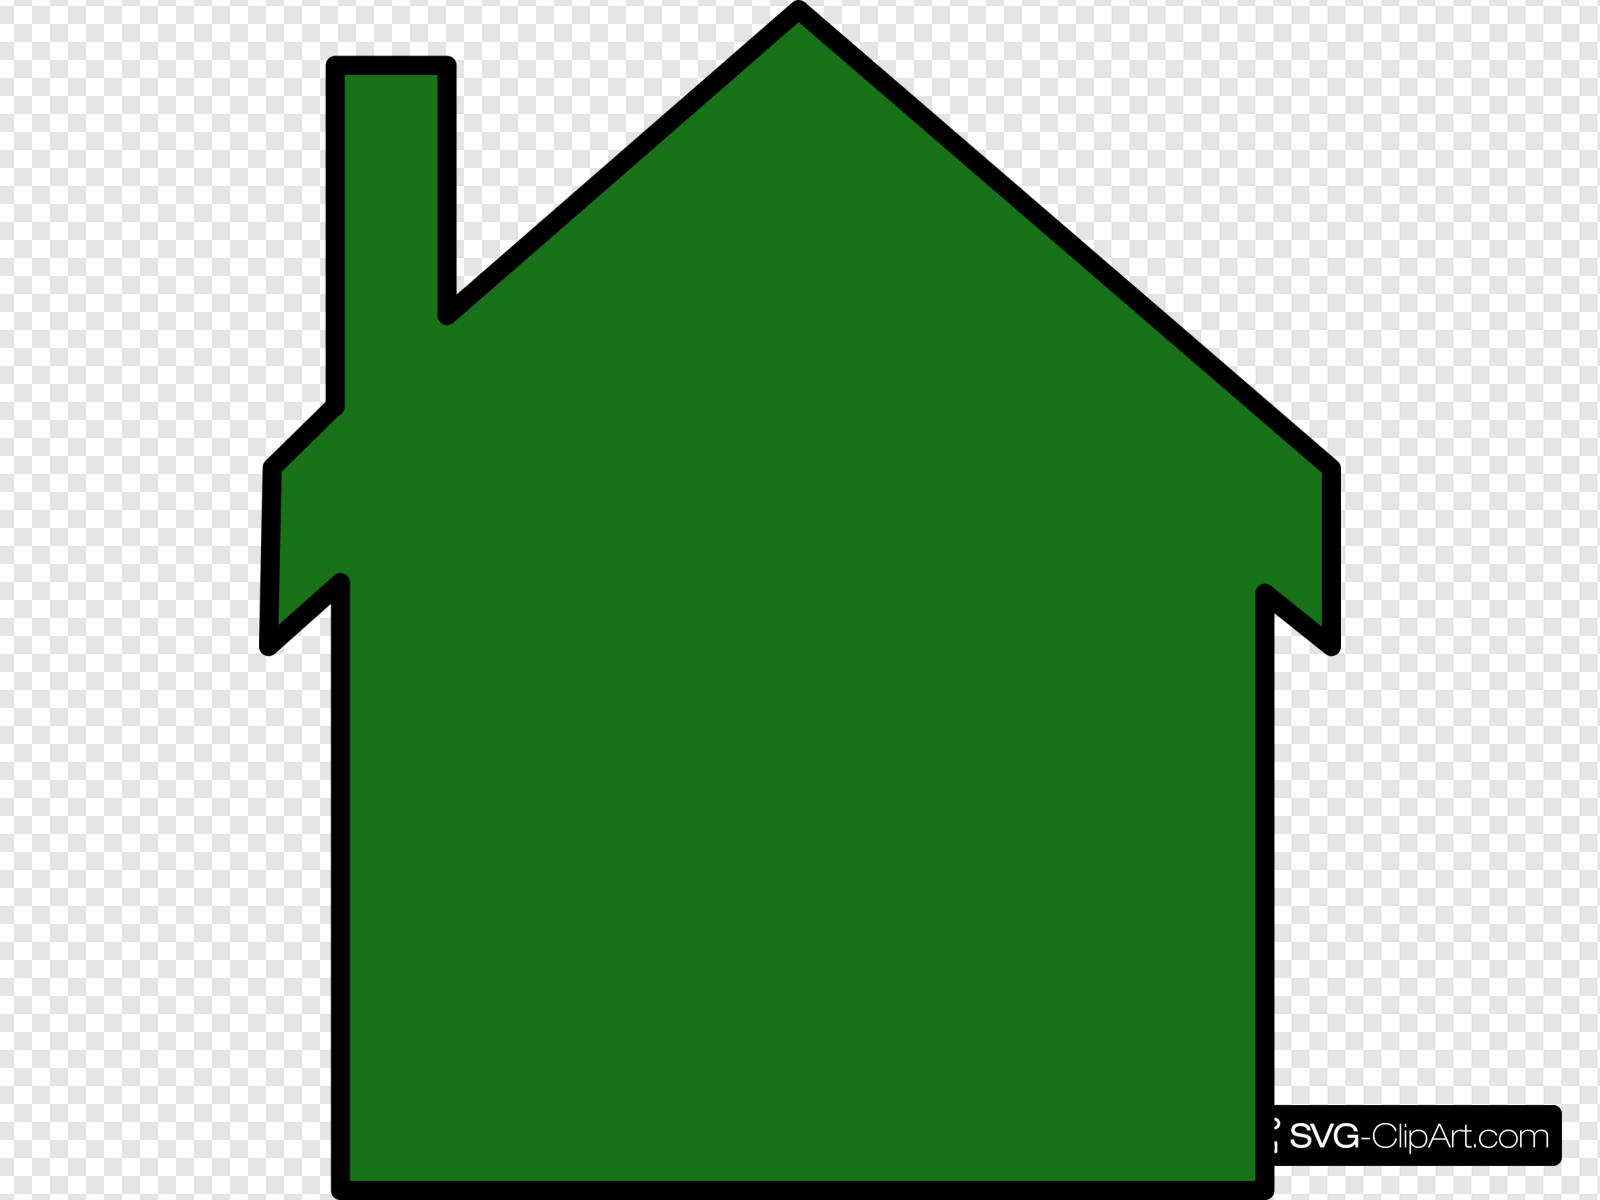 Dark Green House Clip art, Icon and SVG